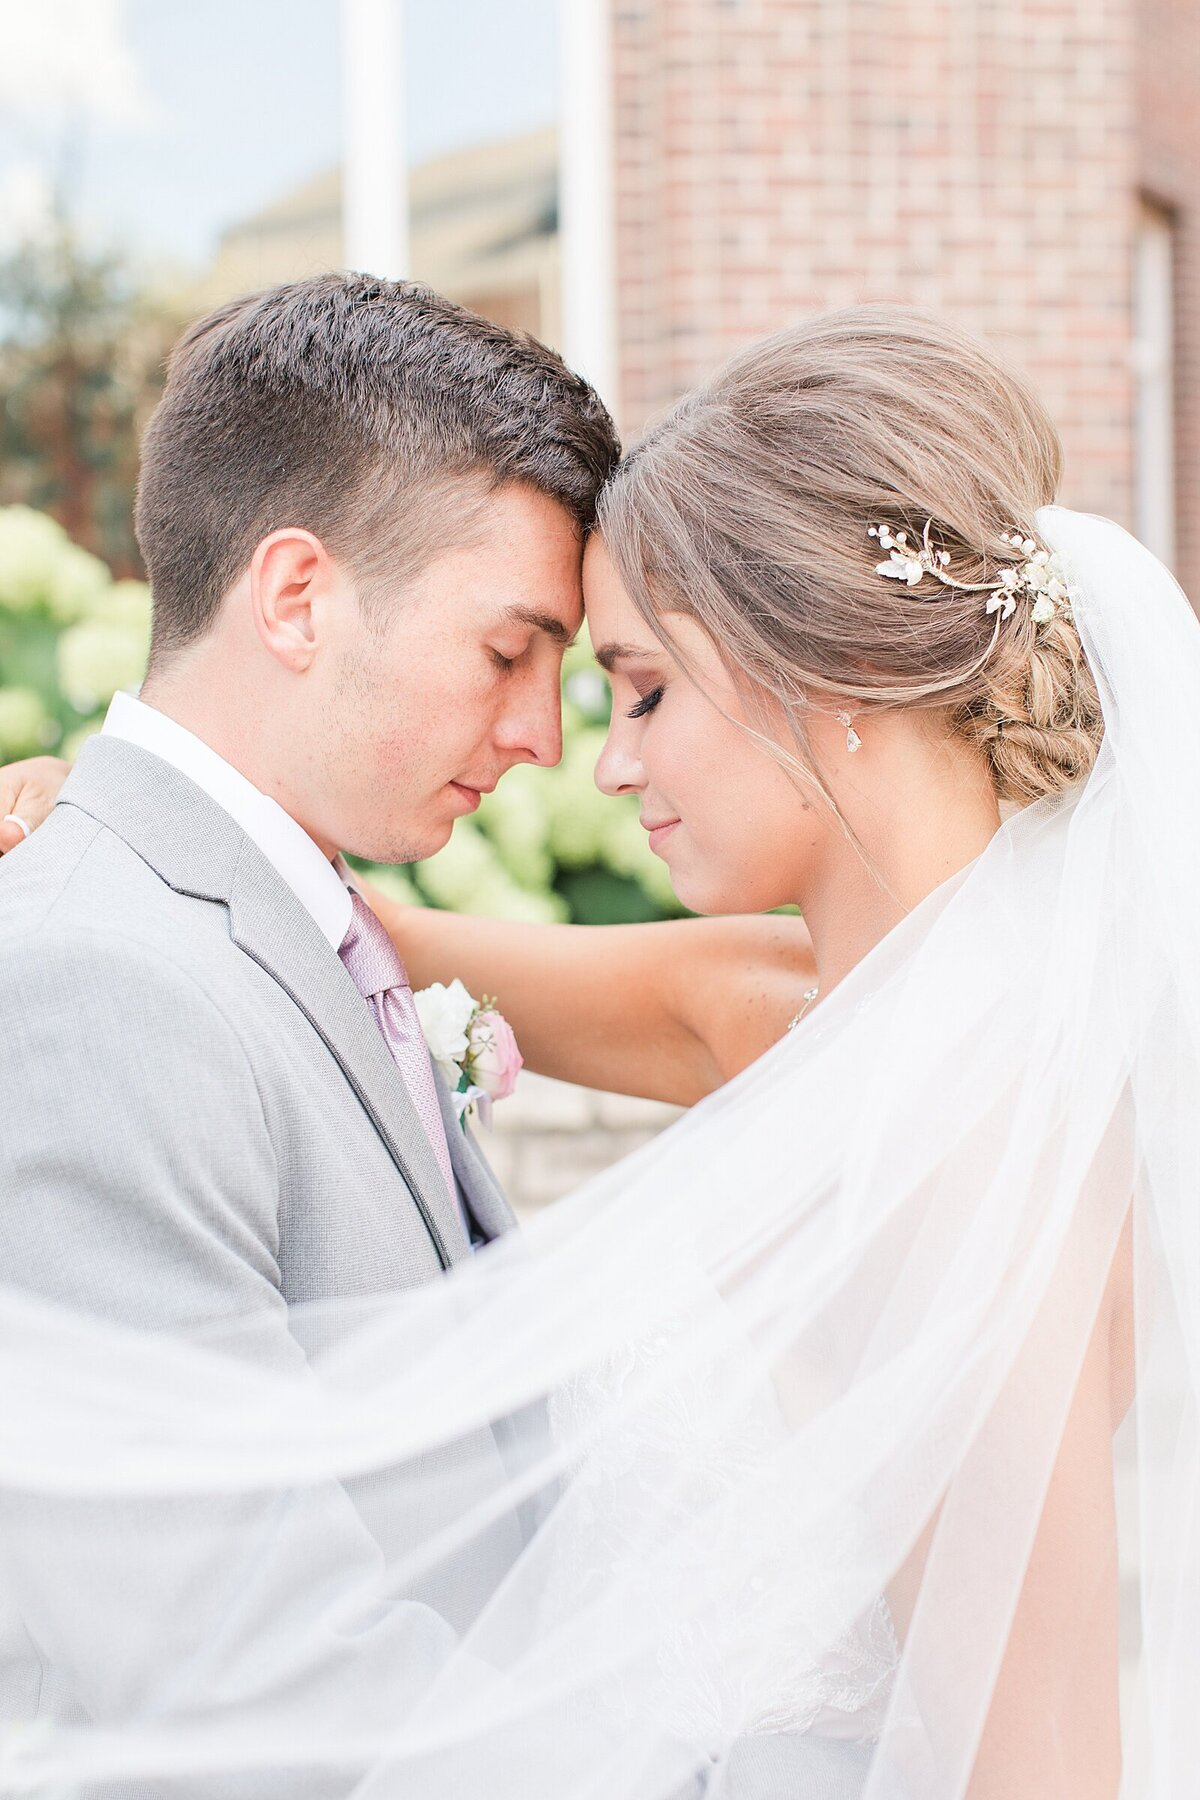 Kara Webster Photography | Meredith & Tyler | University Of Dayton Marriott Wedding Photographer_0059